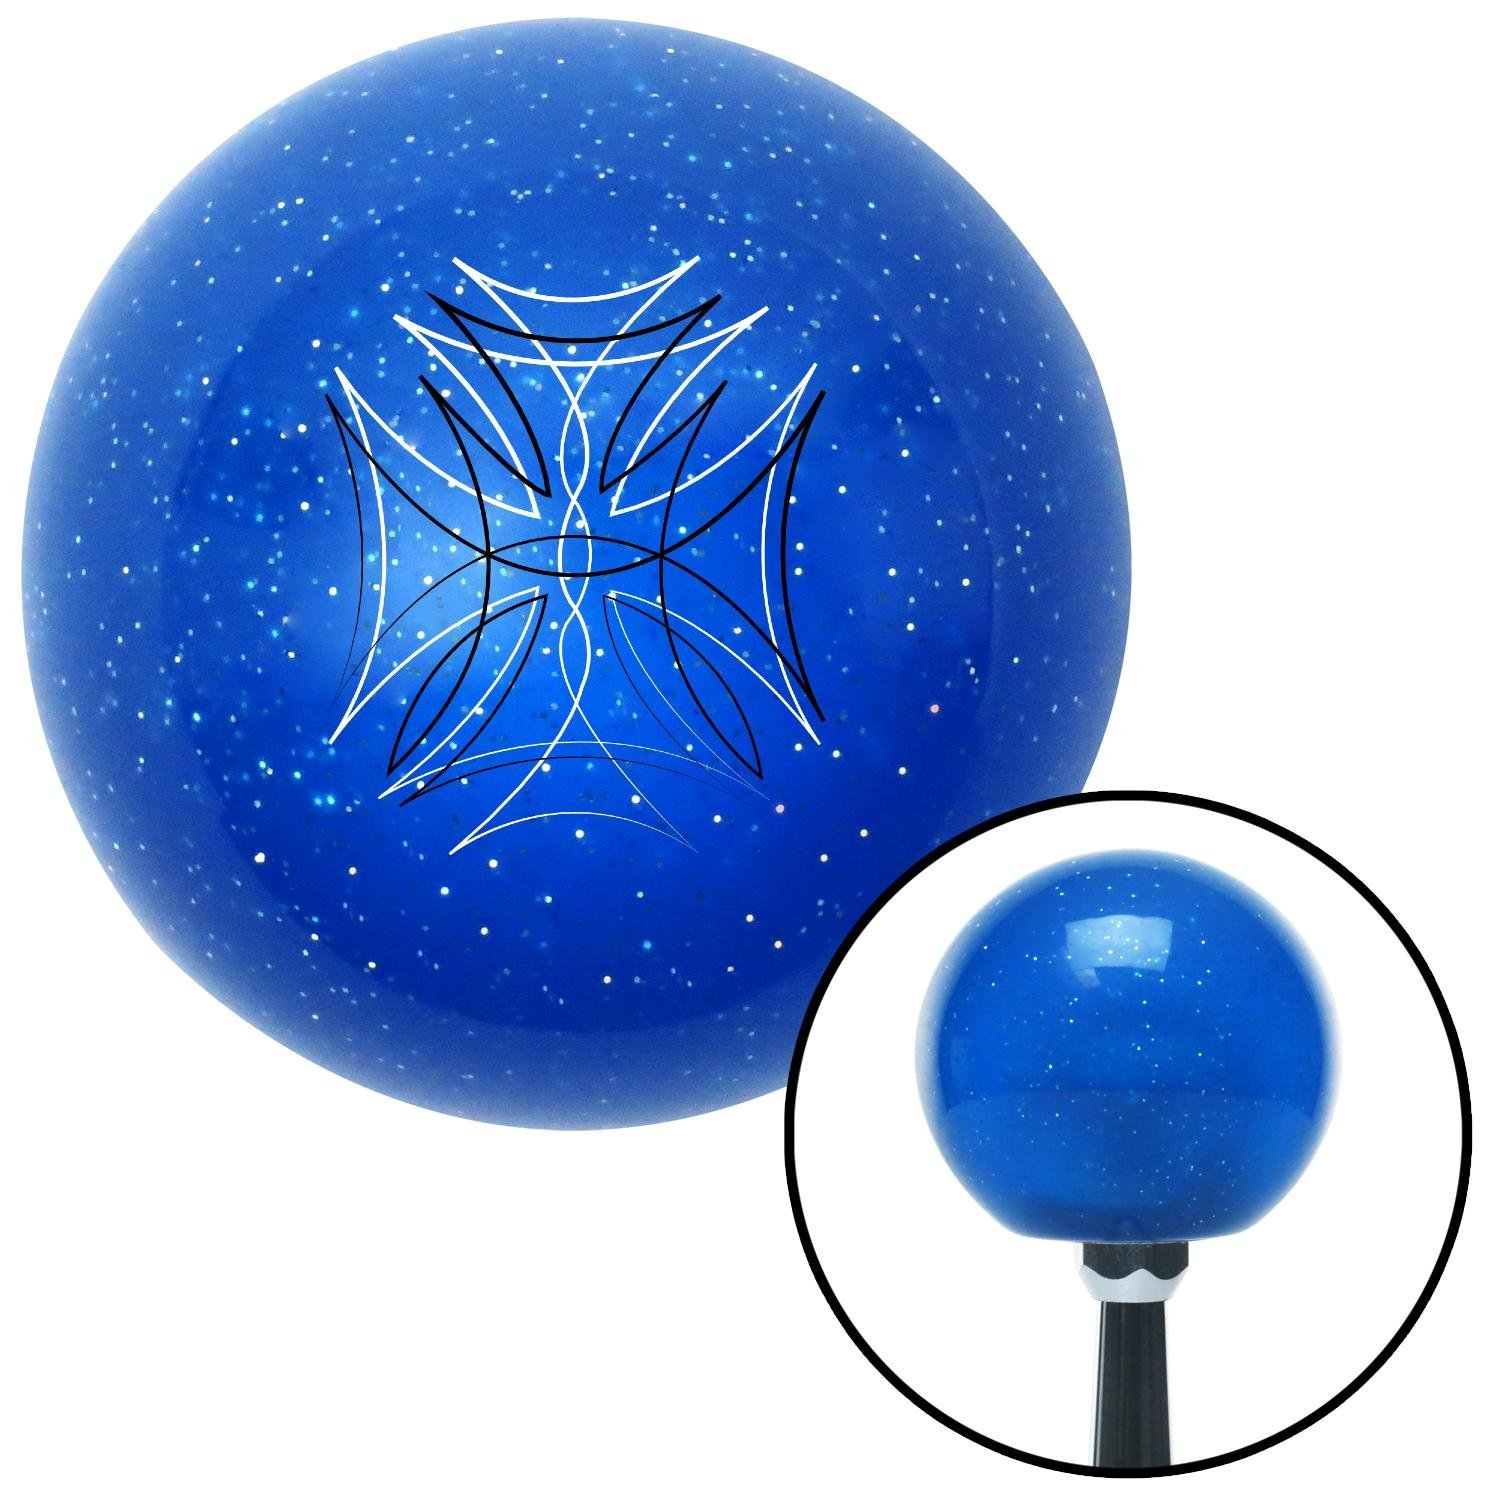 American Shifter 150701 Blue Metal Flake Shift Knob with M16 x 1.5 Insert Black and White Pinstripe 2